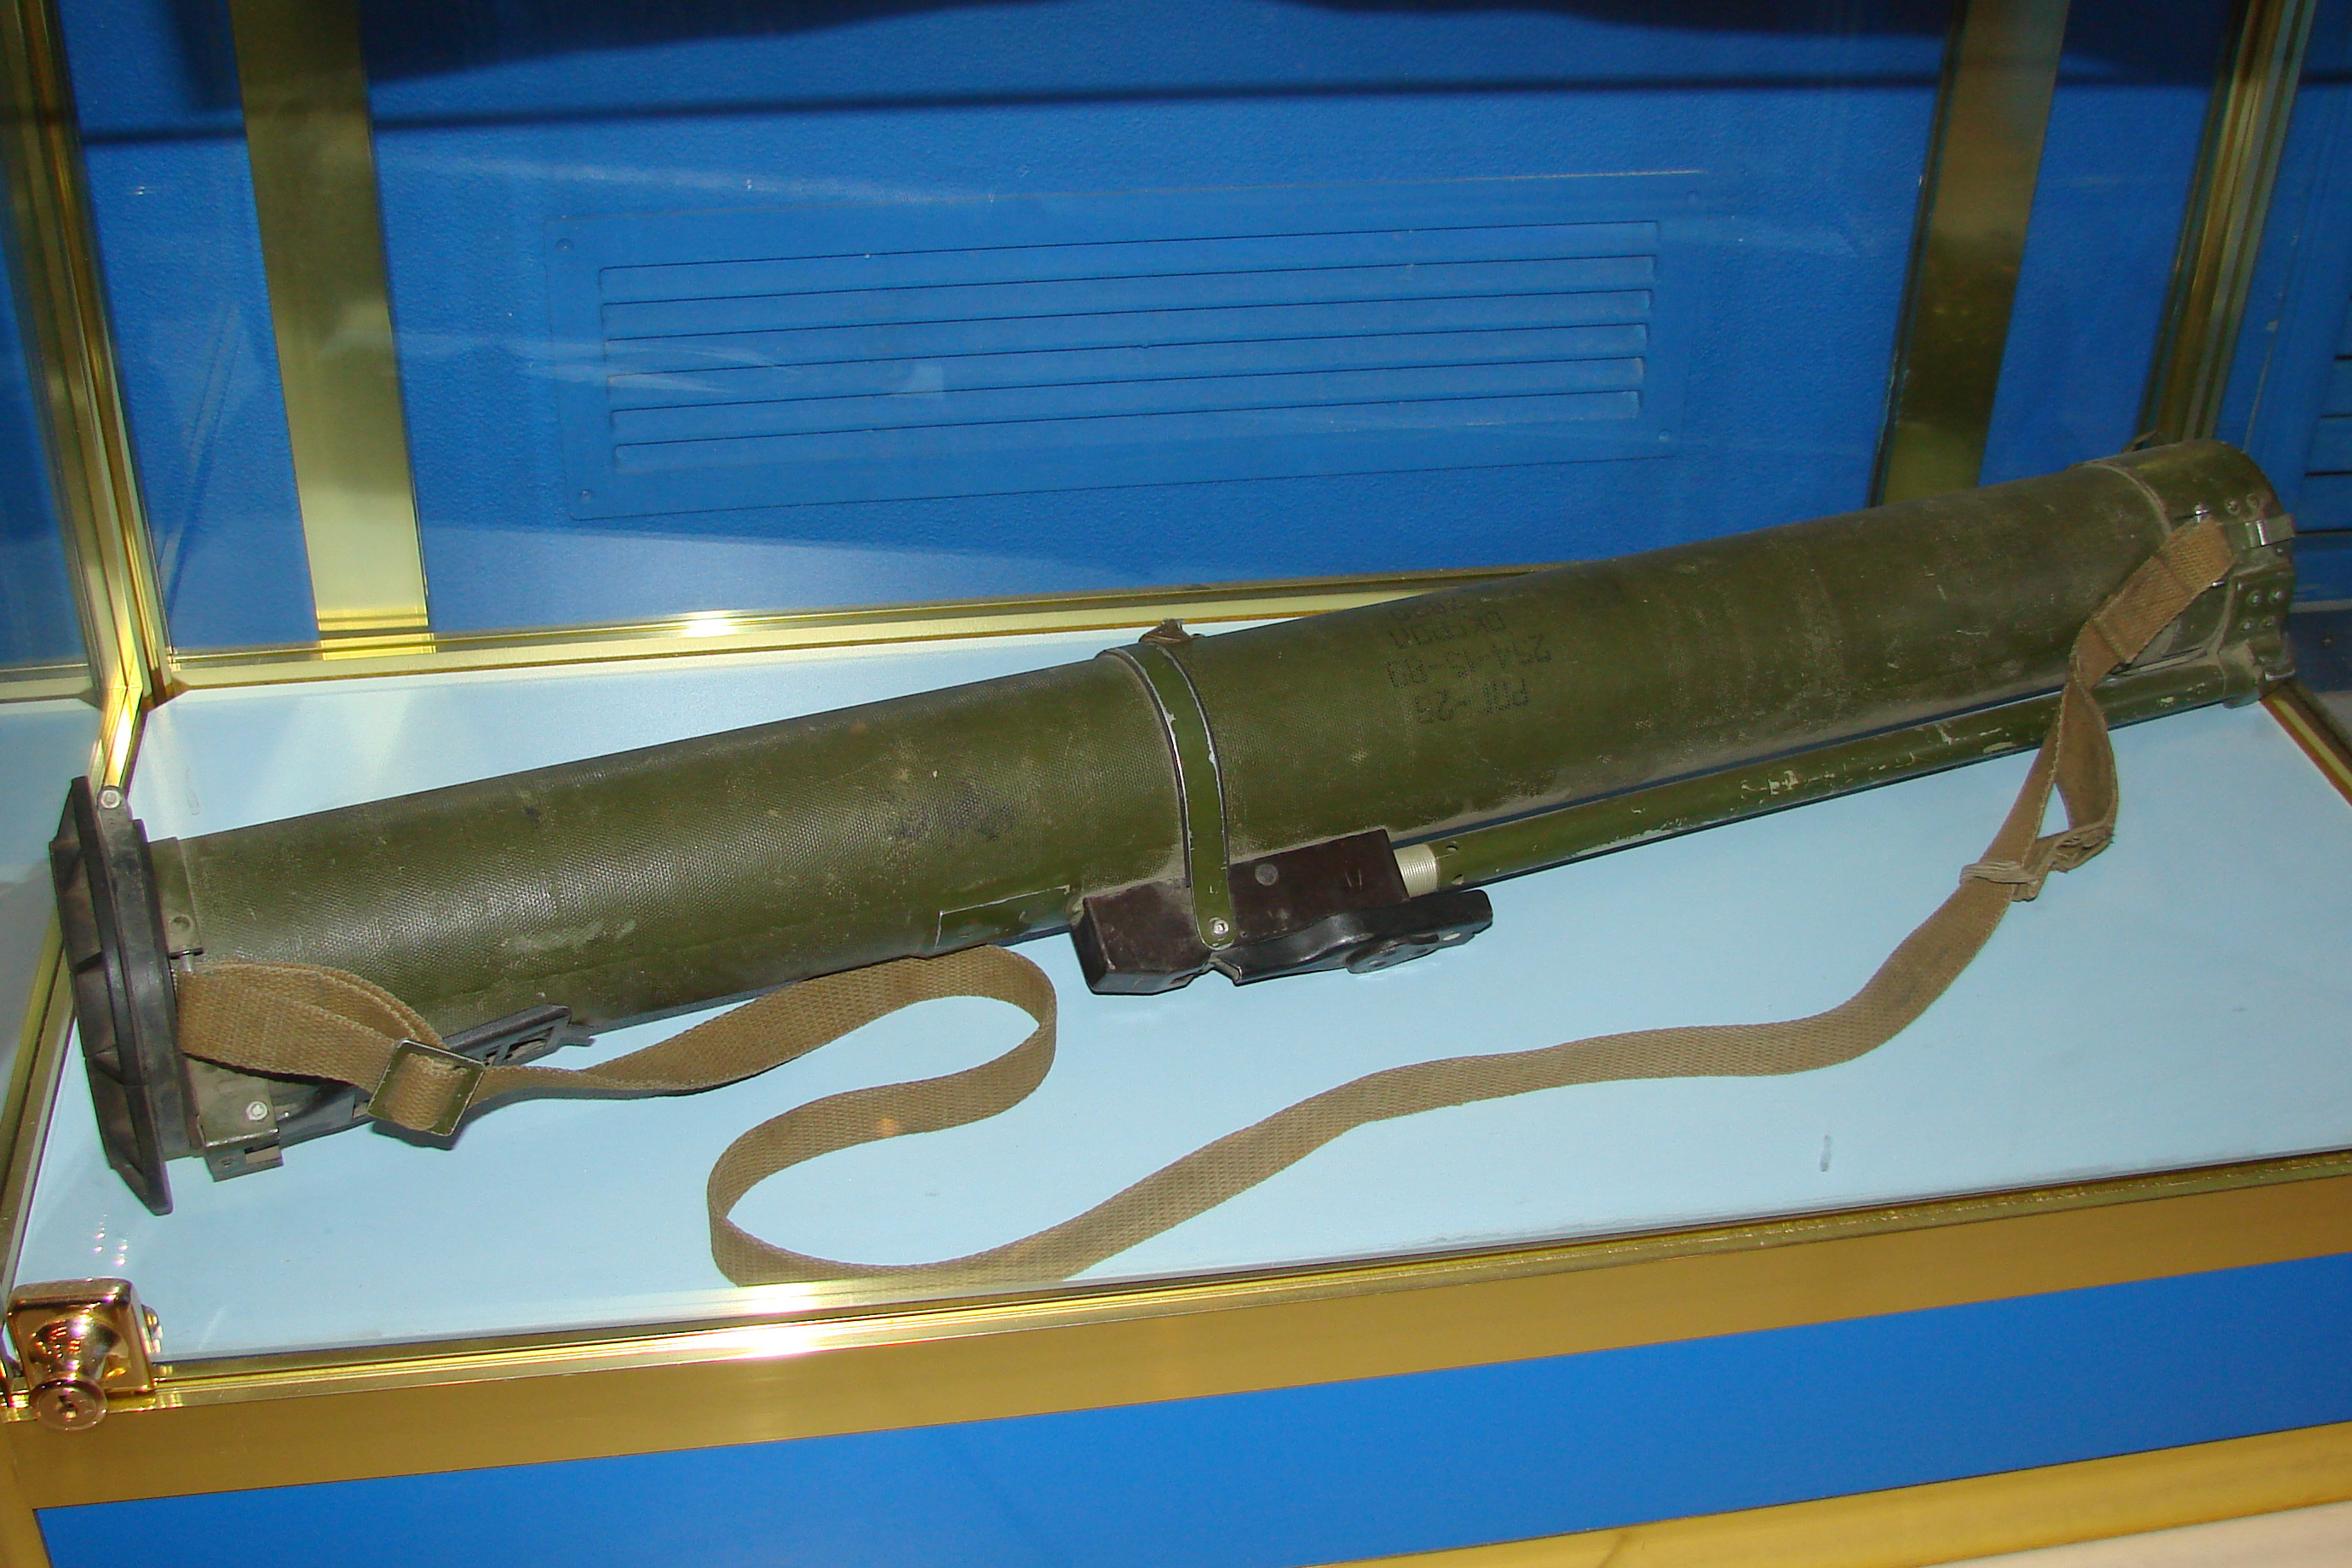 RPG-26 Aglen grenade launchers